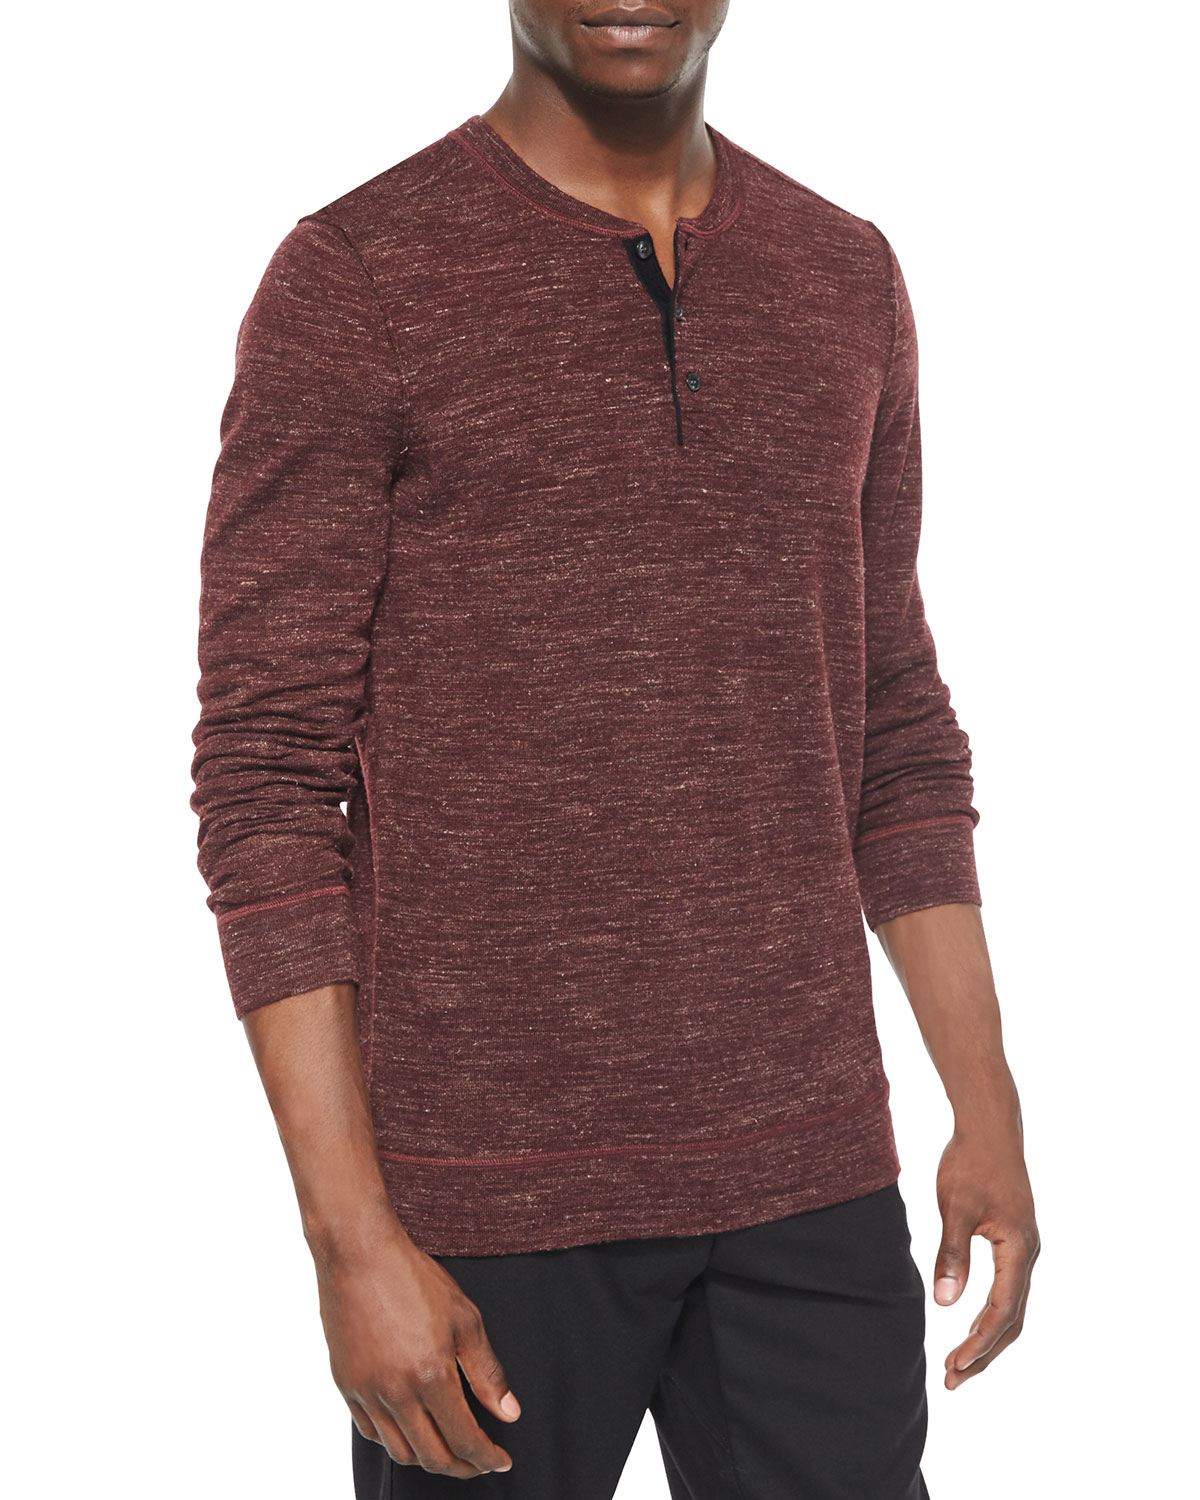 Lyst vince wool blend long sleeve henley tee in red for men for Vince tee shirts sale